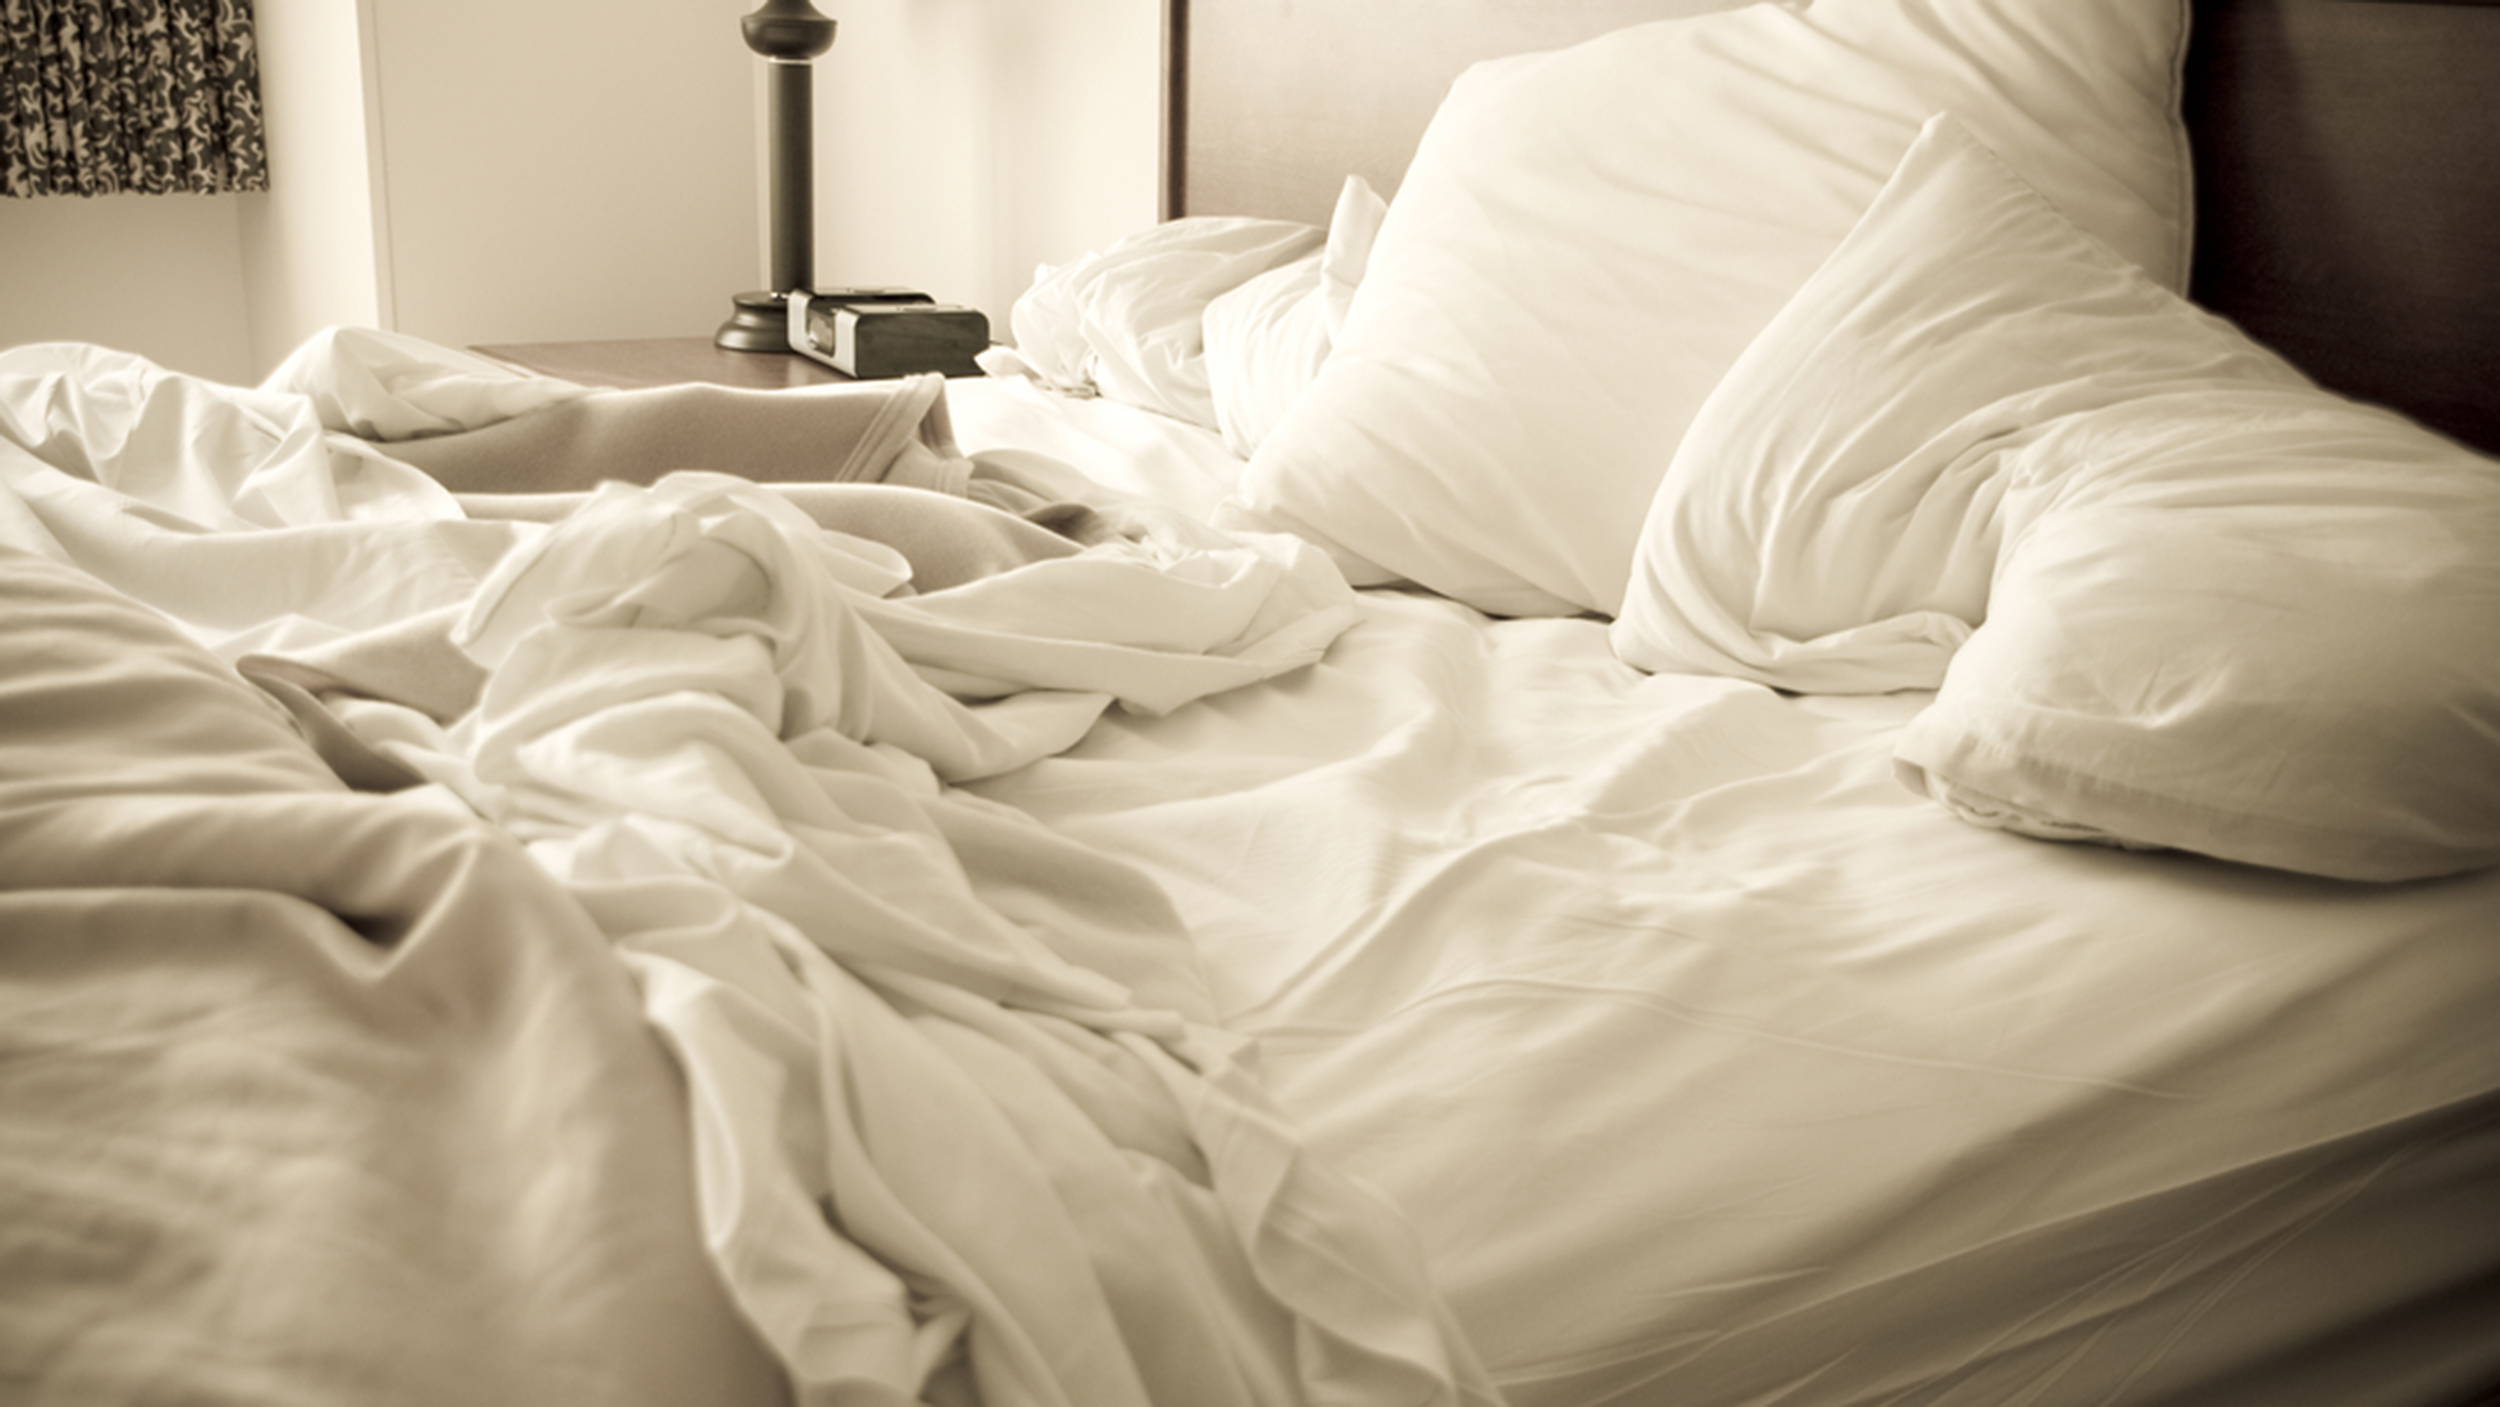 messy-bed-stock-today-tease-150911_5949f895c76c4a00be85c88964343bbf